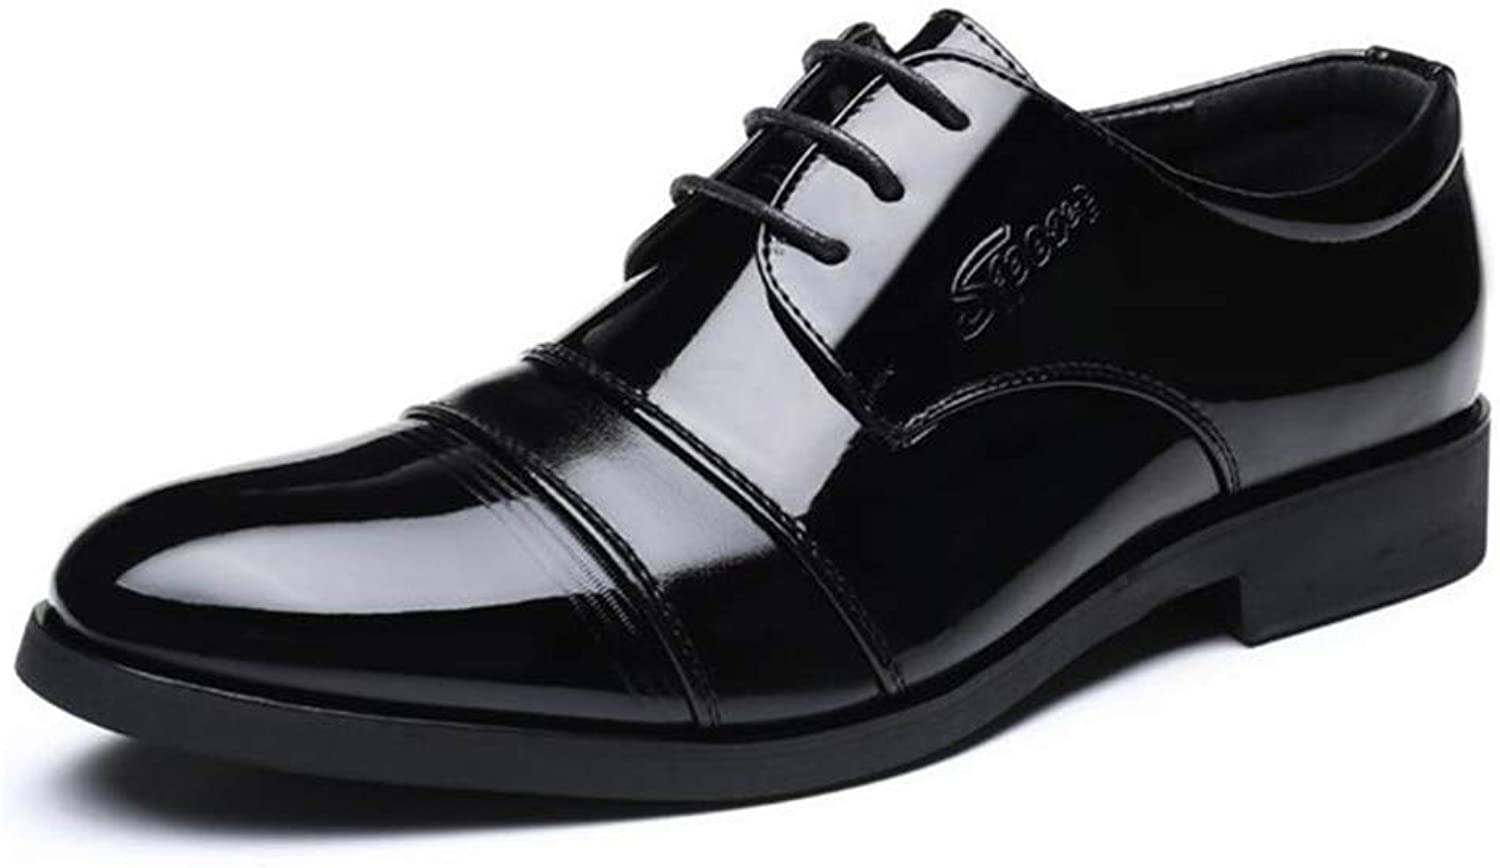 Y-H Men's Formal shoes,Spring Fall Artificial PU Lace Up Formal Business shoes, Casual Driving shoes,Wedding Night Club Party & Evening,Black,40